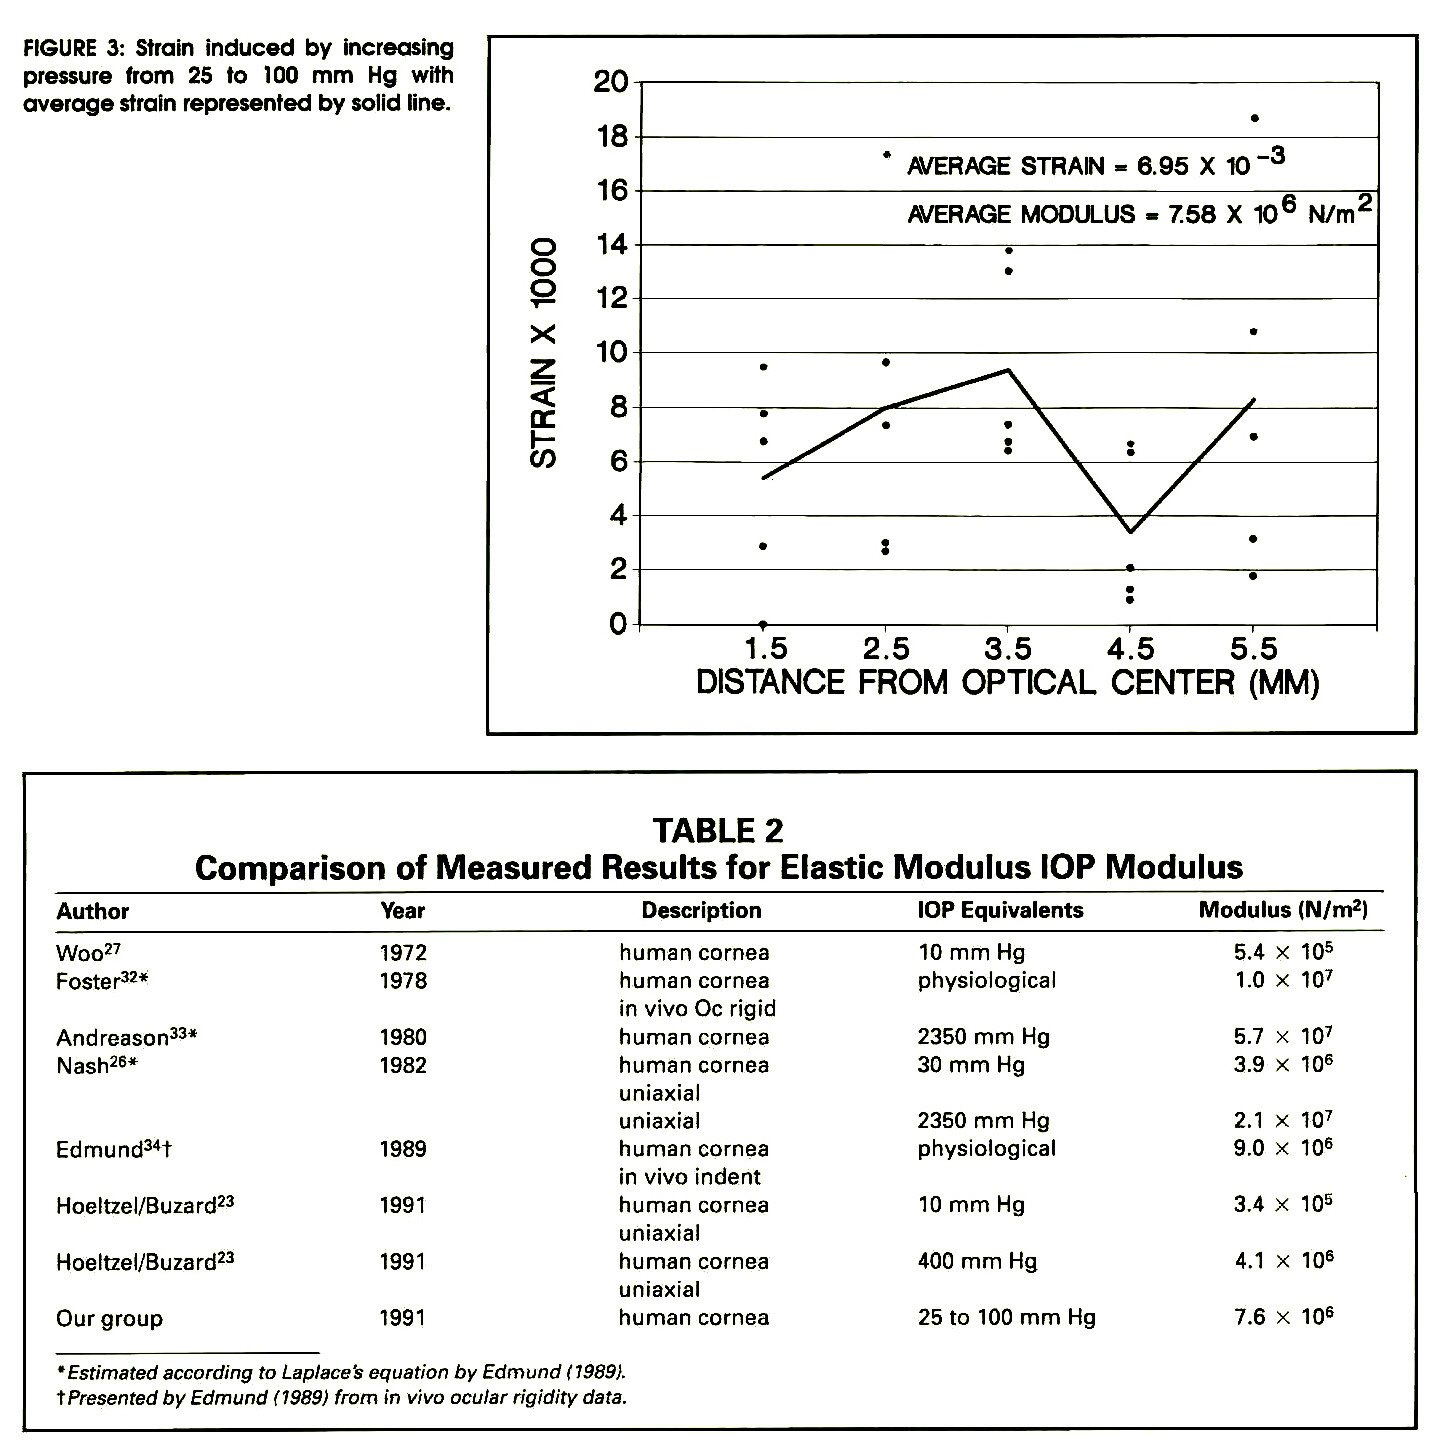 FIGURE 3: Strain induced by increasing pressure from 25 to 100 mm Hg with average strain represented by solid line.TABLE 2Comparison of Measured Results for Elastic Modulus IOP Modulus